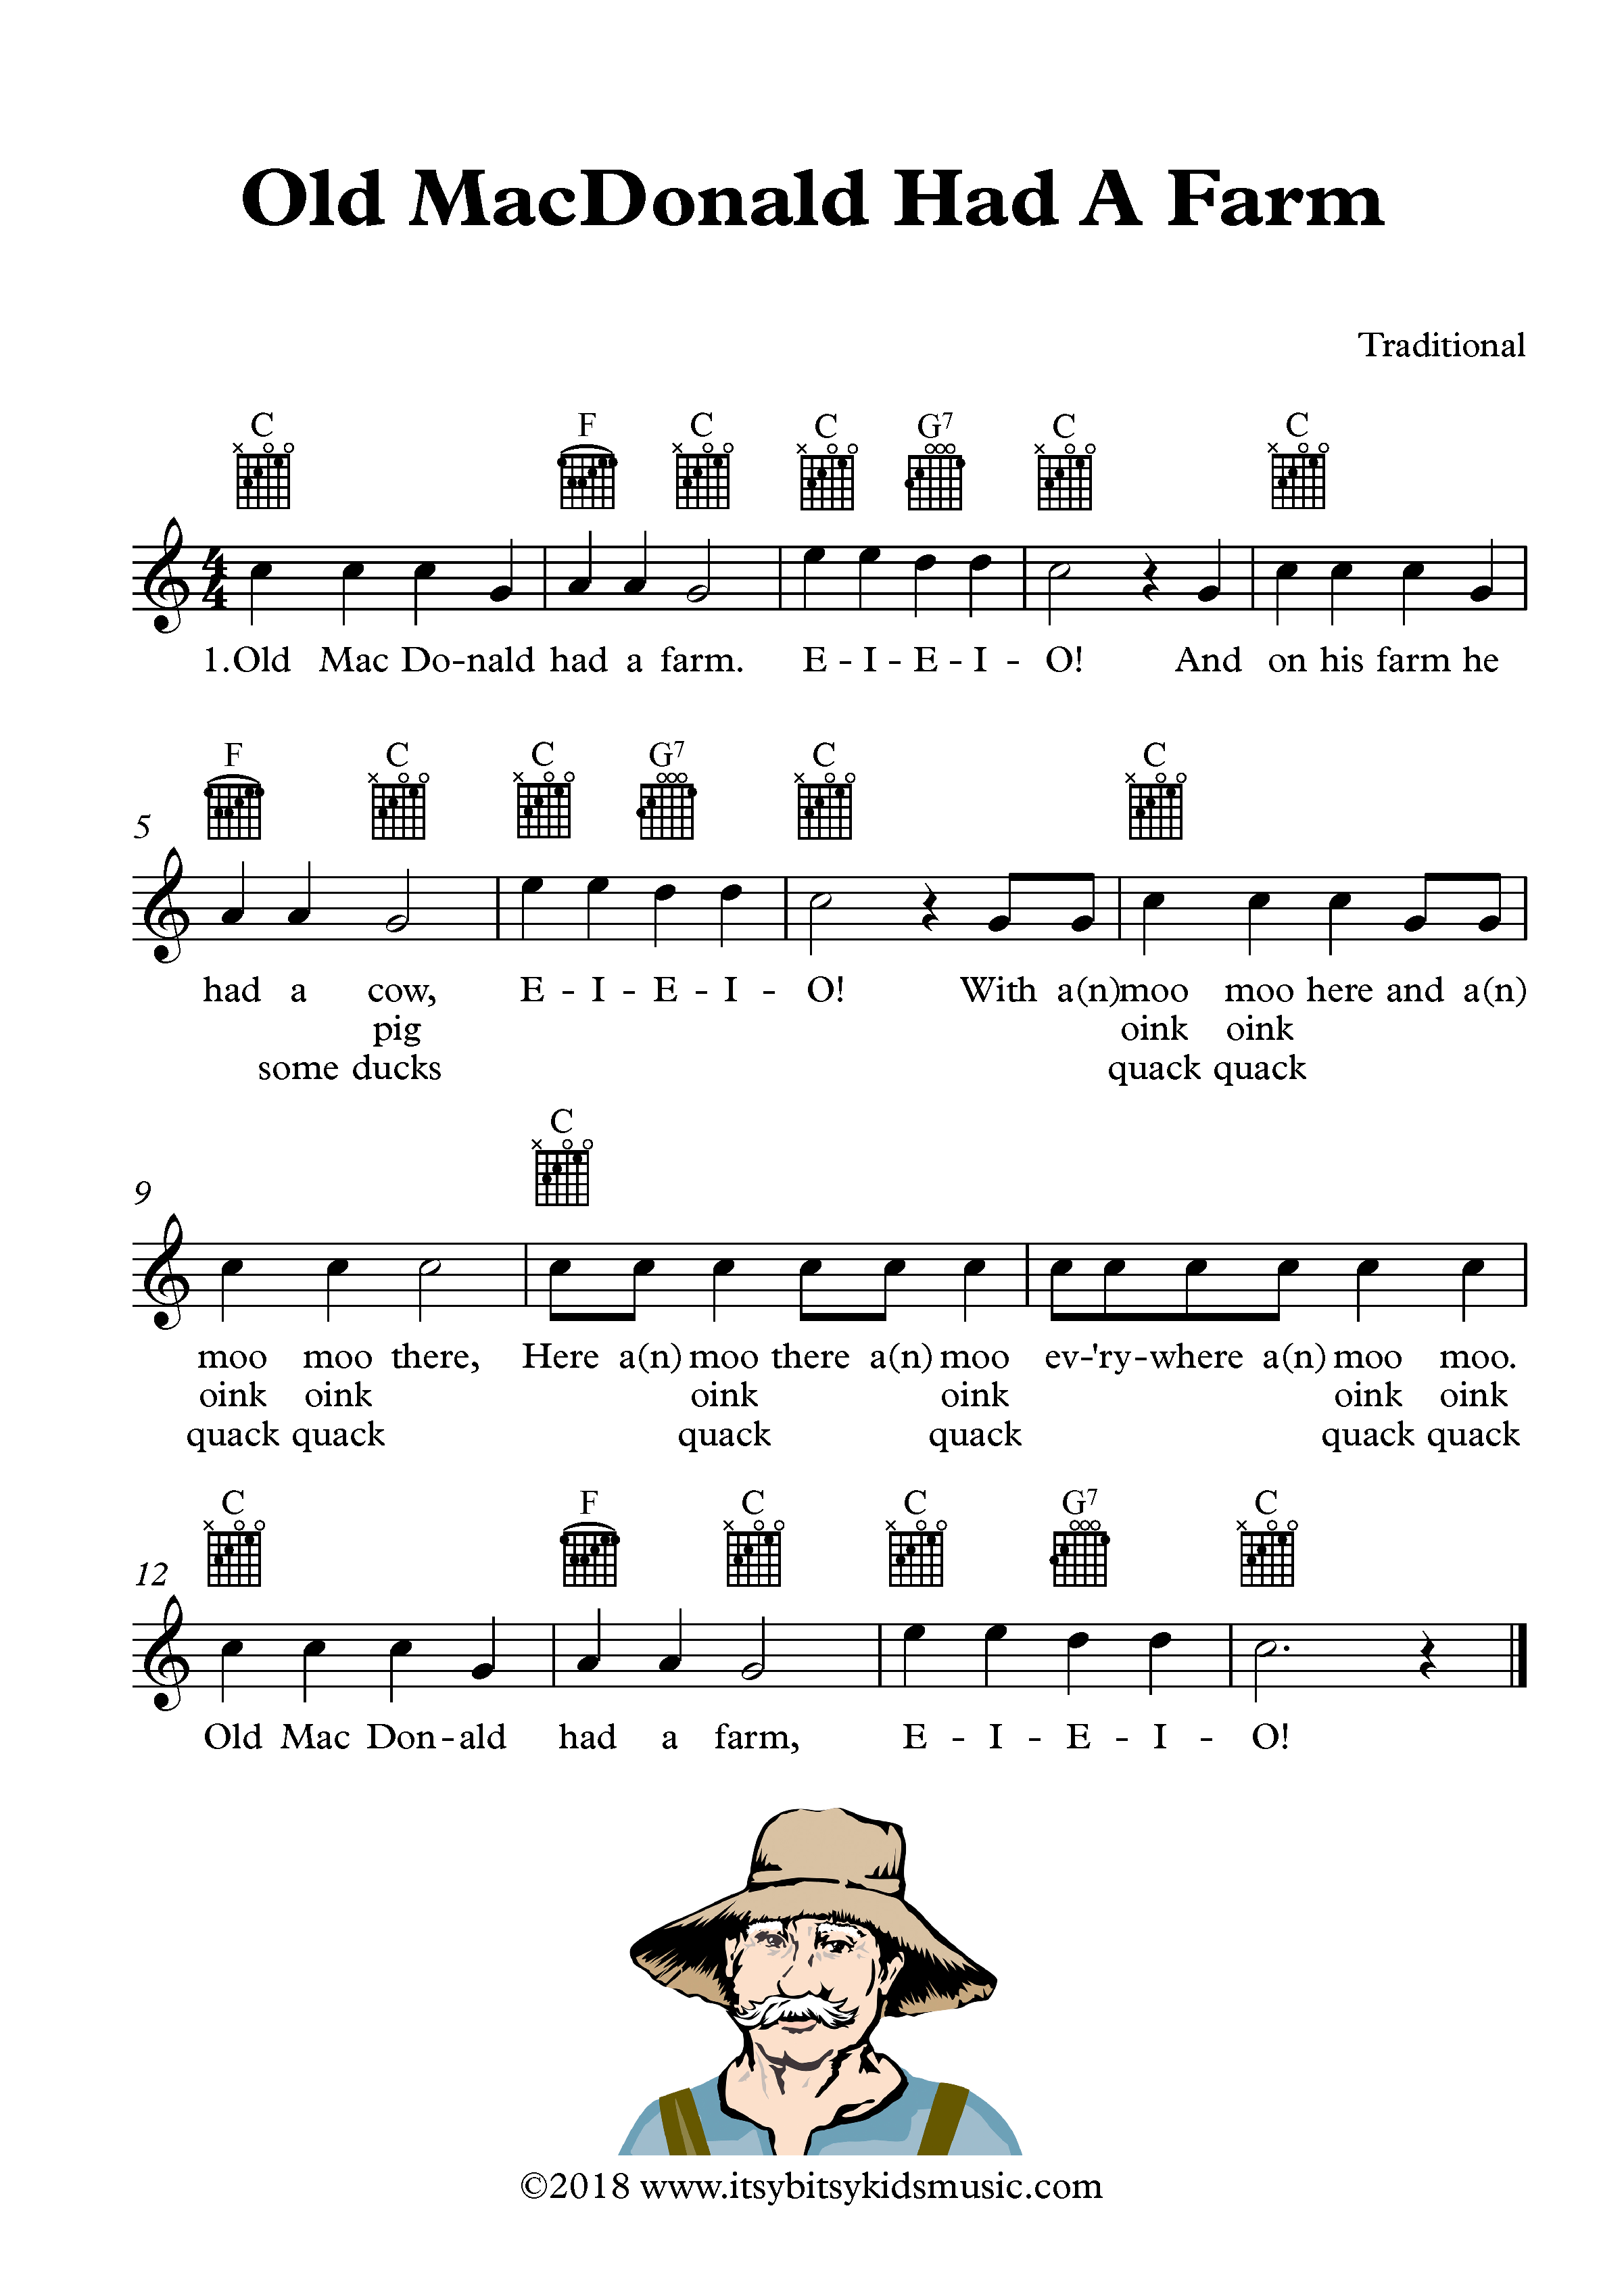 Old Macdonald Had A Farm Sheet Music With Chords And Lyrics